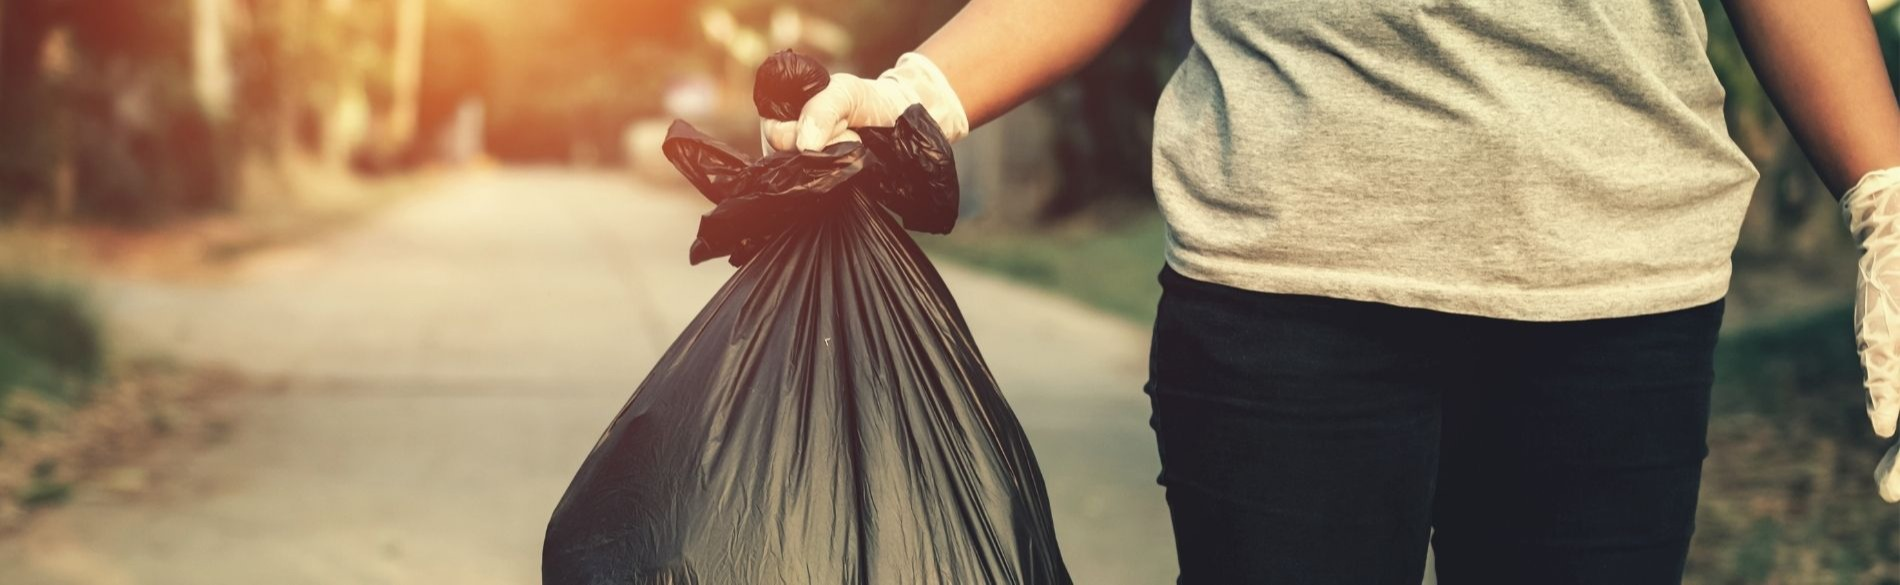 person holding a bag of garbage